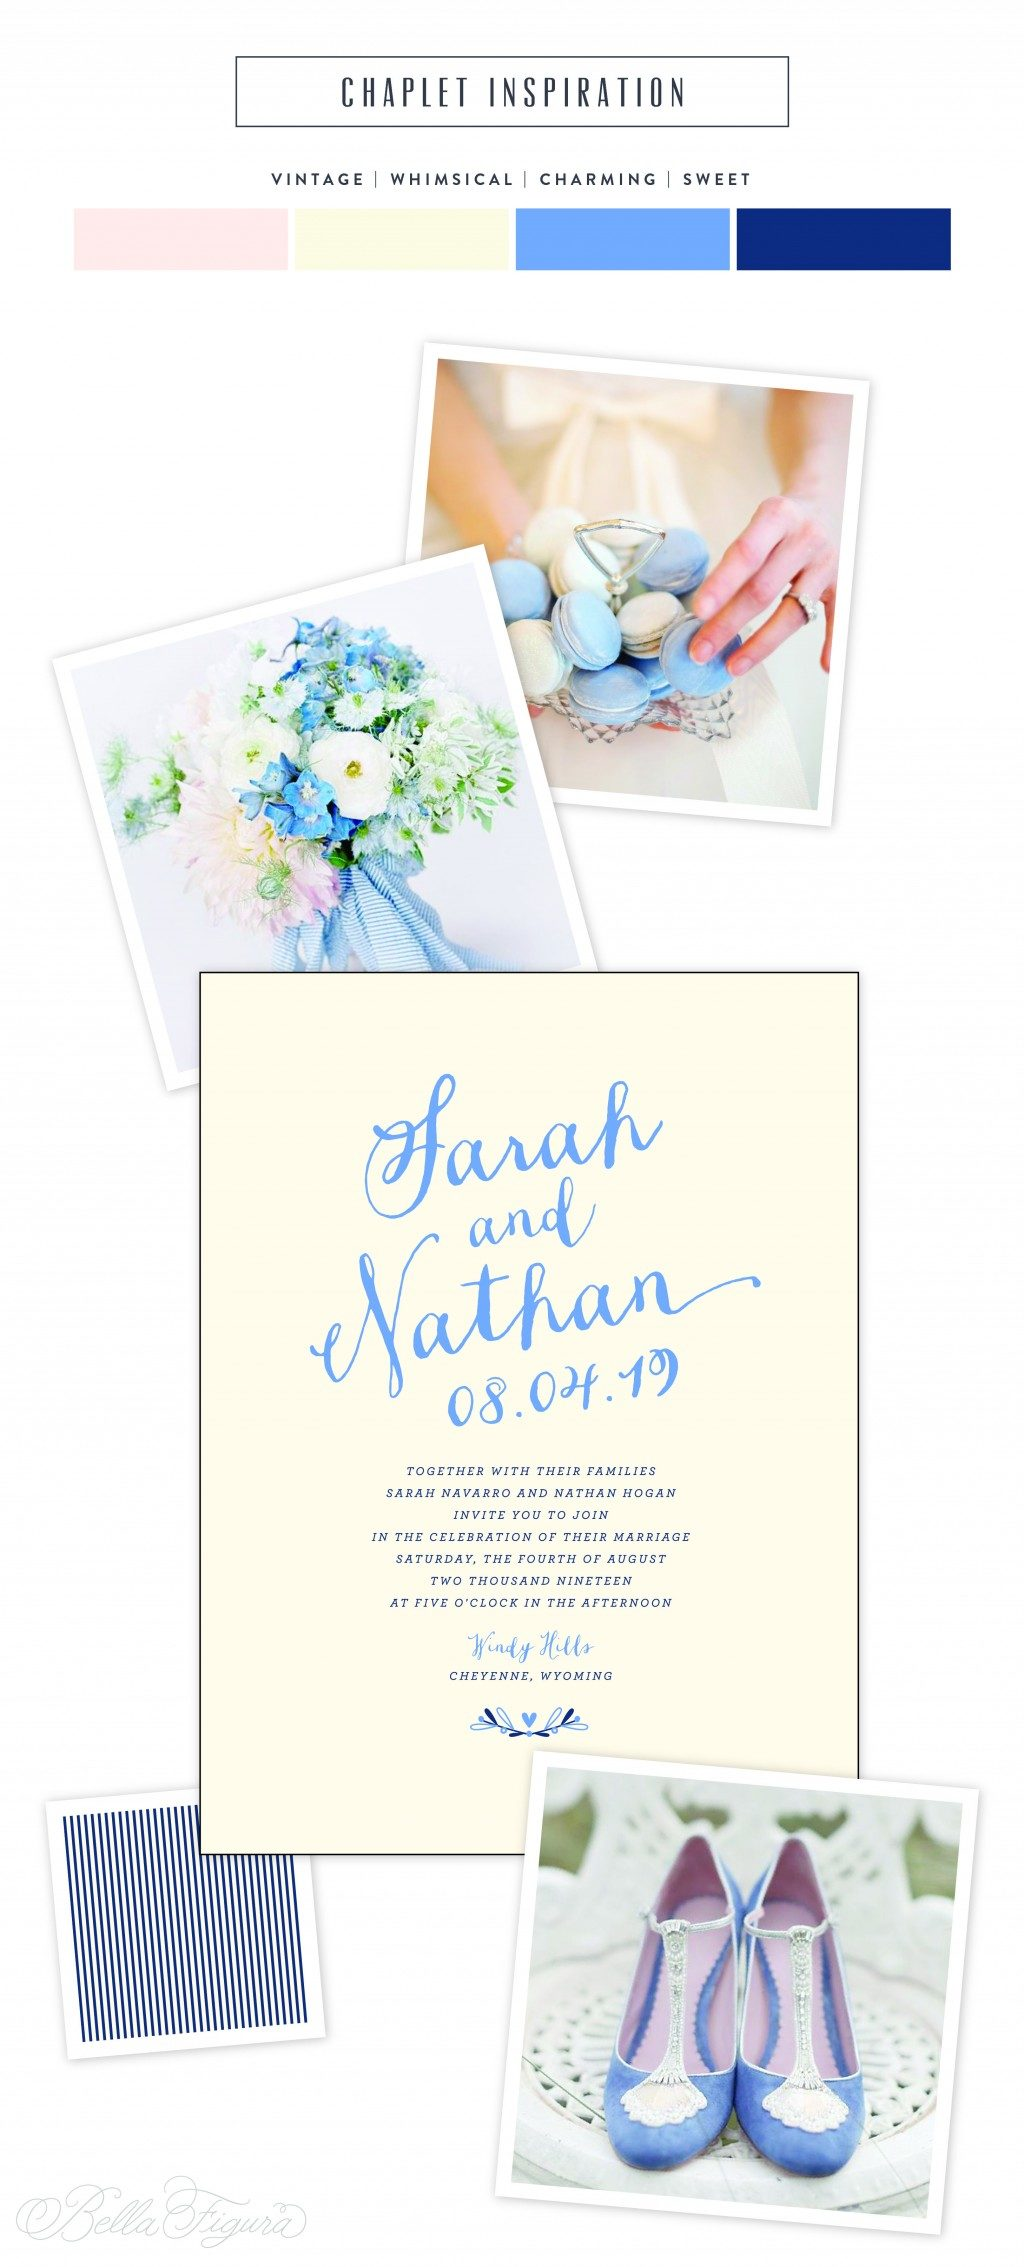 Garden party wedding inspiration from Bella Figura featuring Lindsy Talarico's Chaplet invitation design